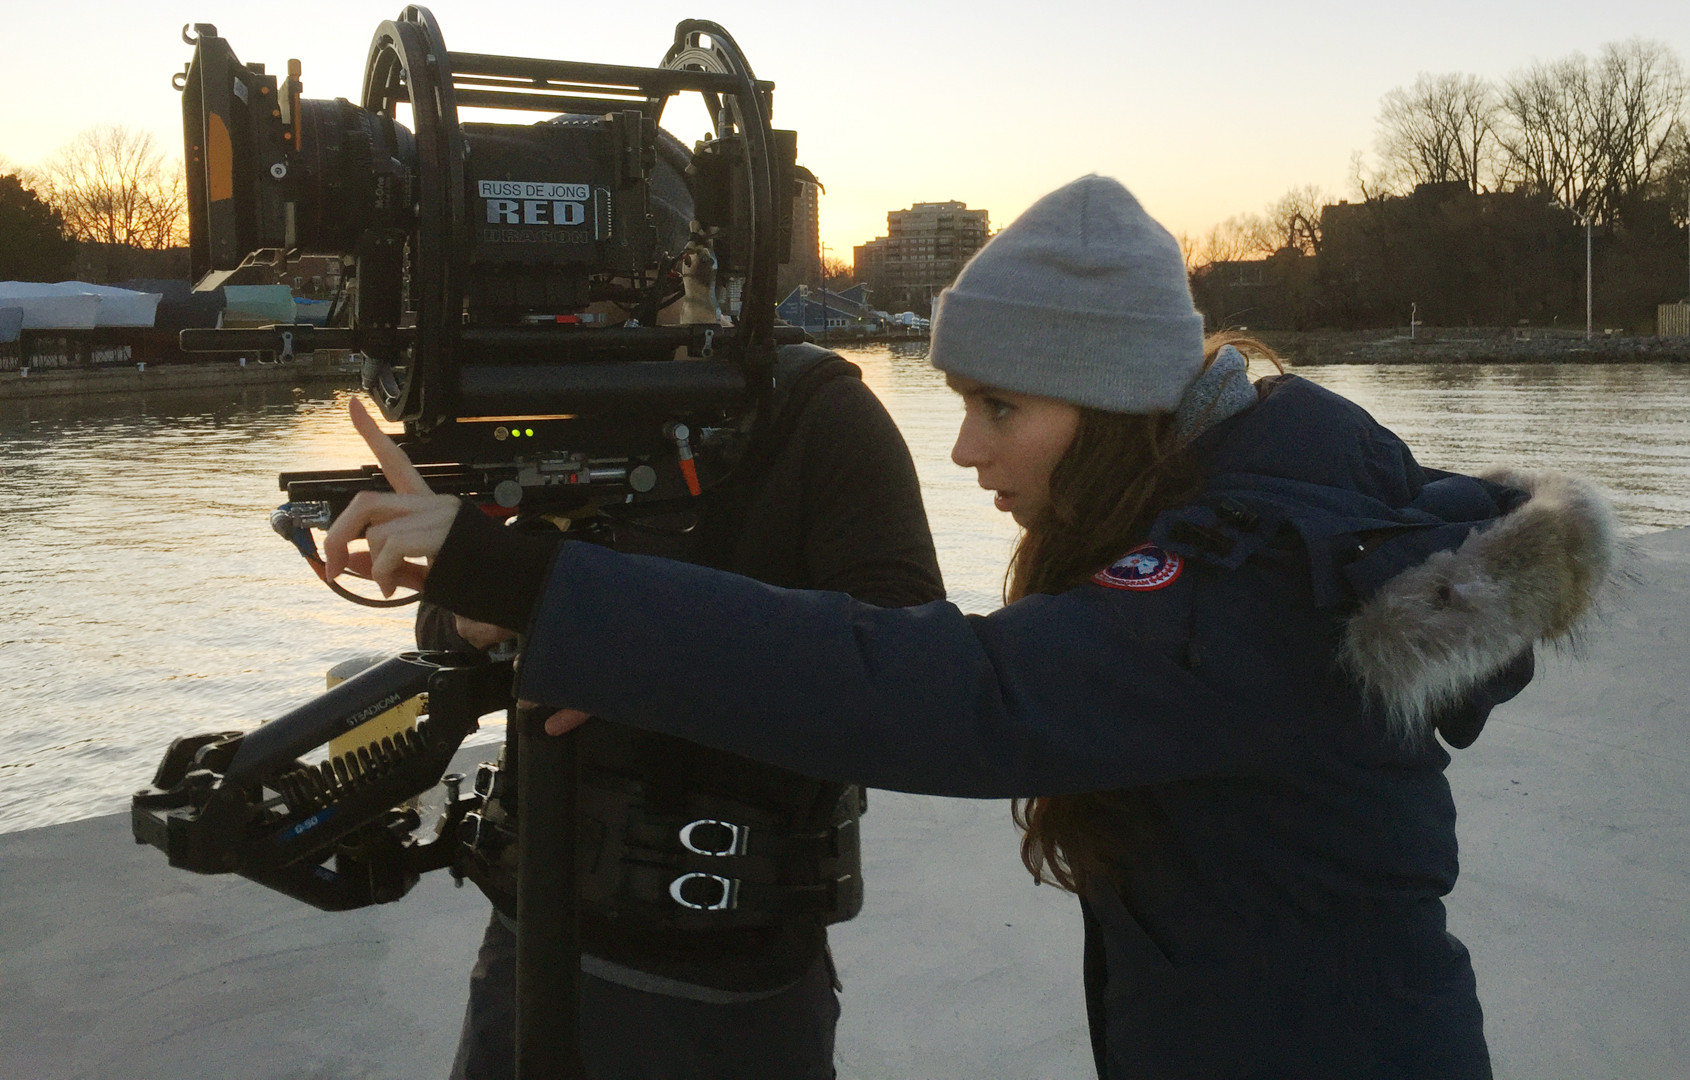 Director / Director of Photography Together